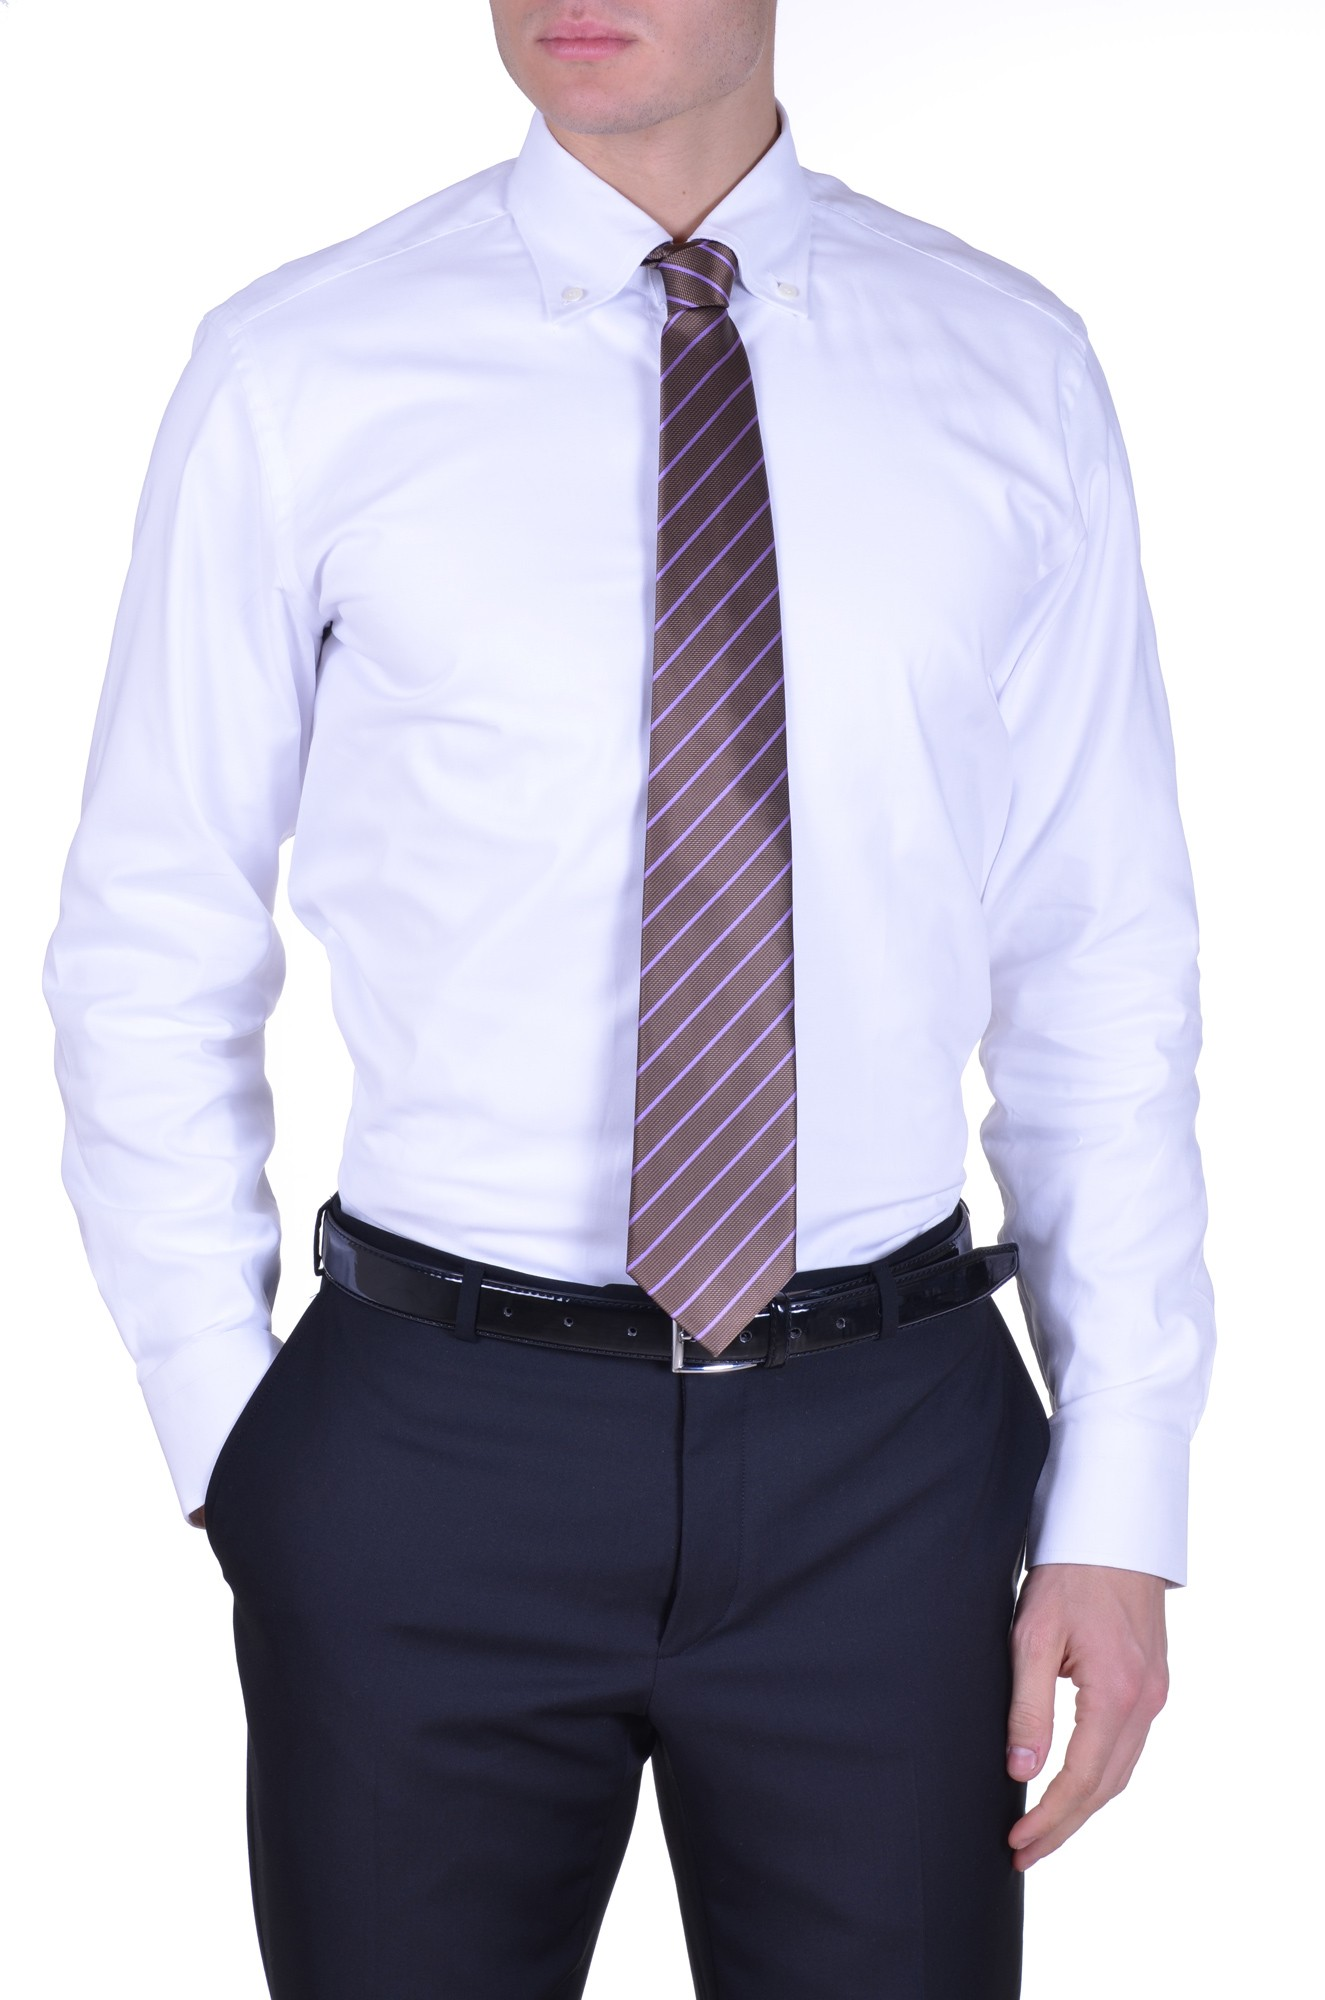 Choosing clothes for christmas kamiceria 39 s blog for Shirt and tie for men